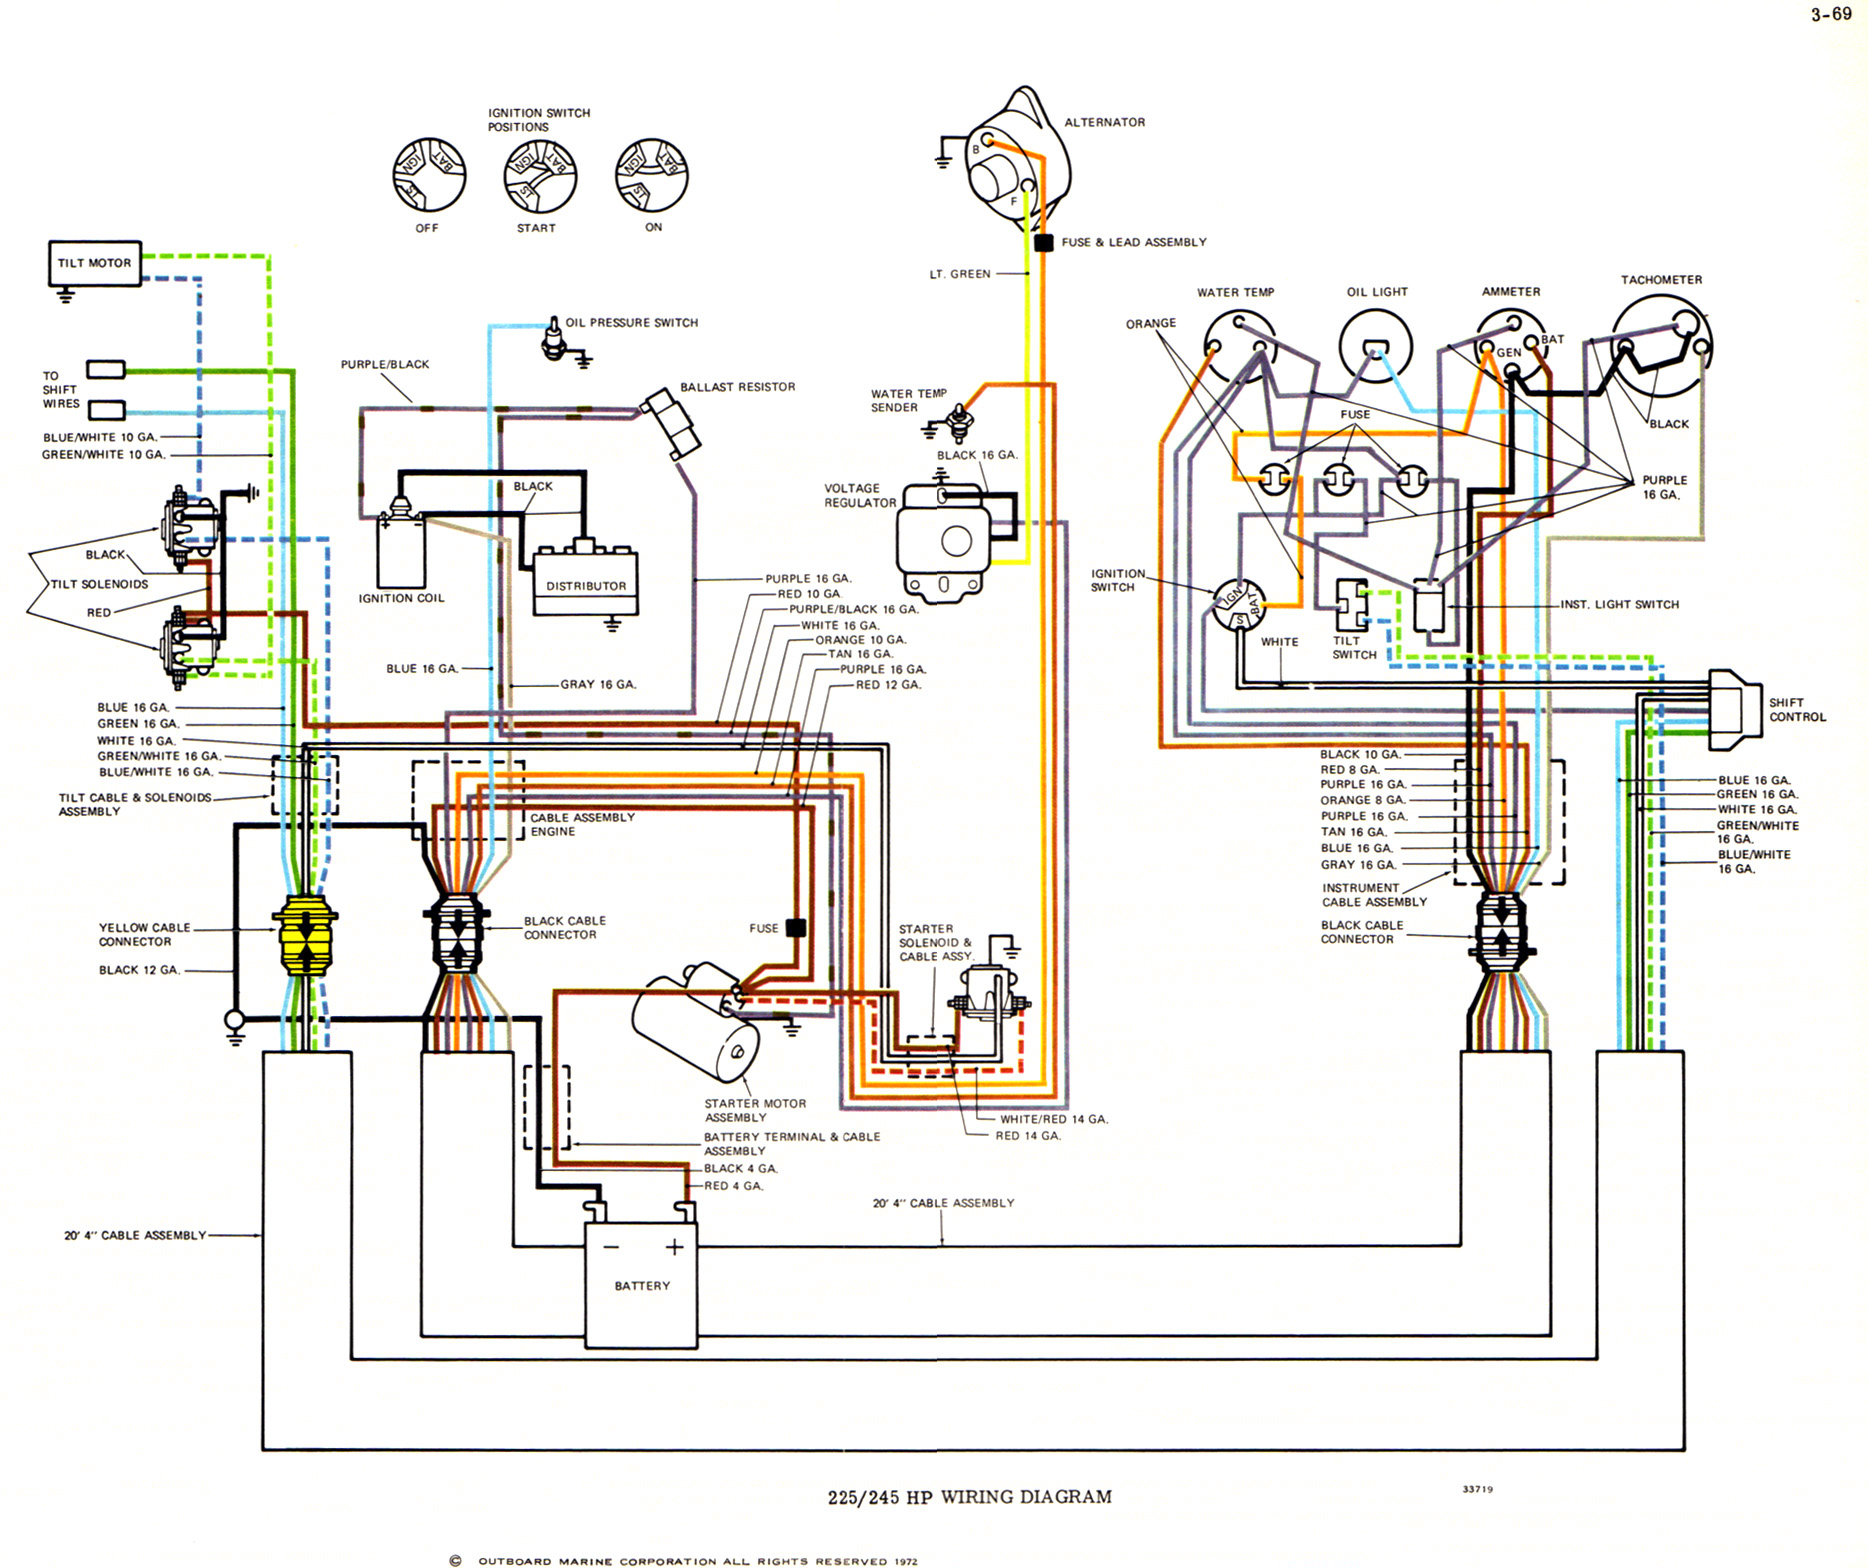 hight resolution of 0583653 omc wiring diagram